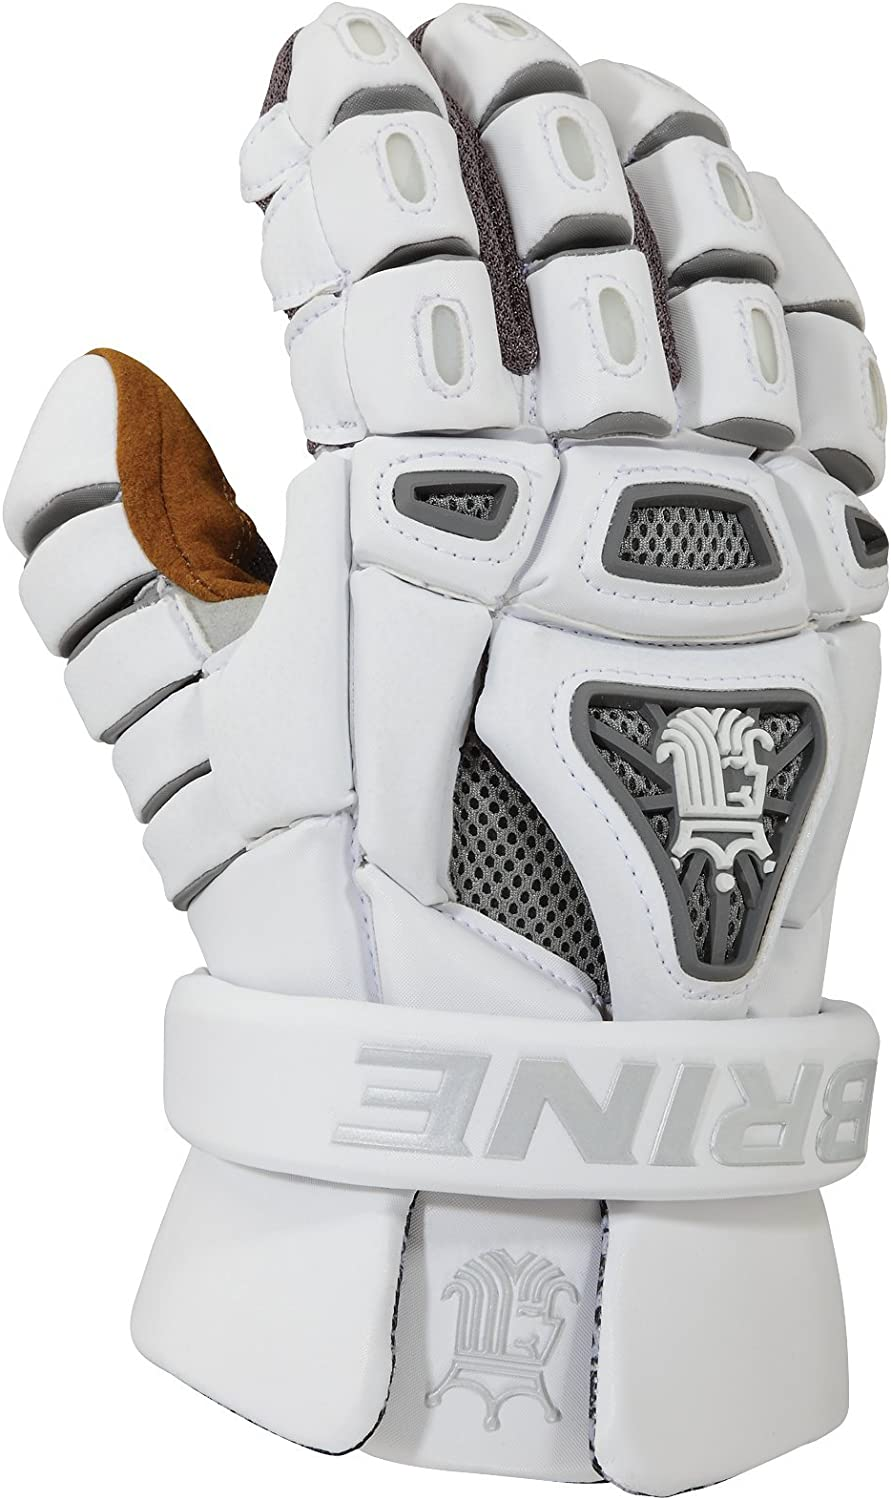 Brine Courier shipping free shipping King 4 Glove Goalie Lacrosse Phoenix Mall